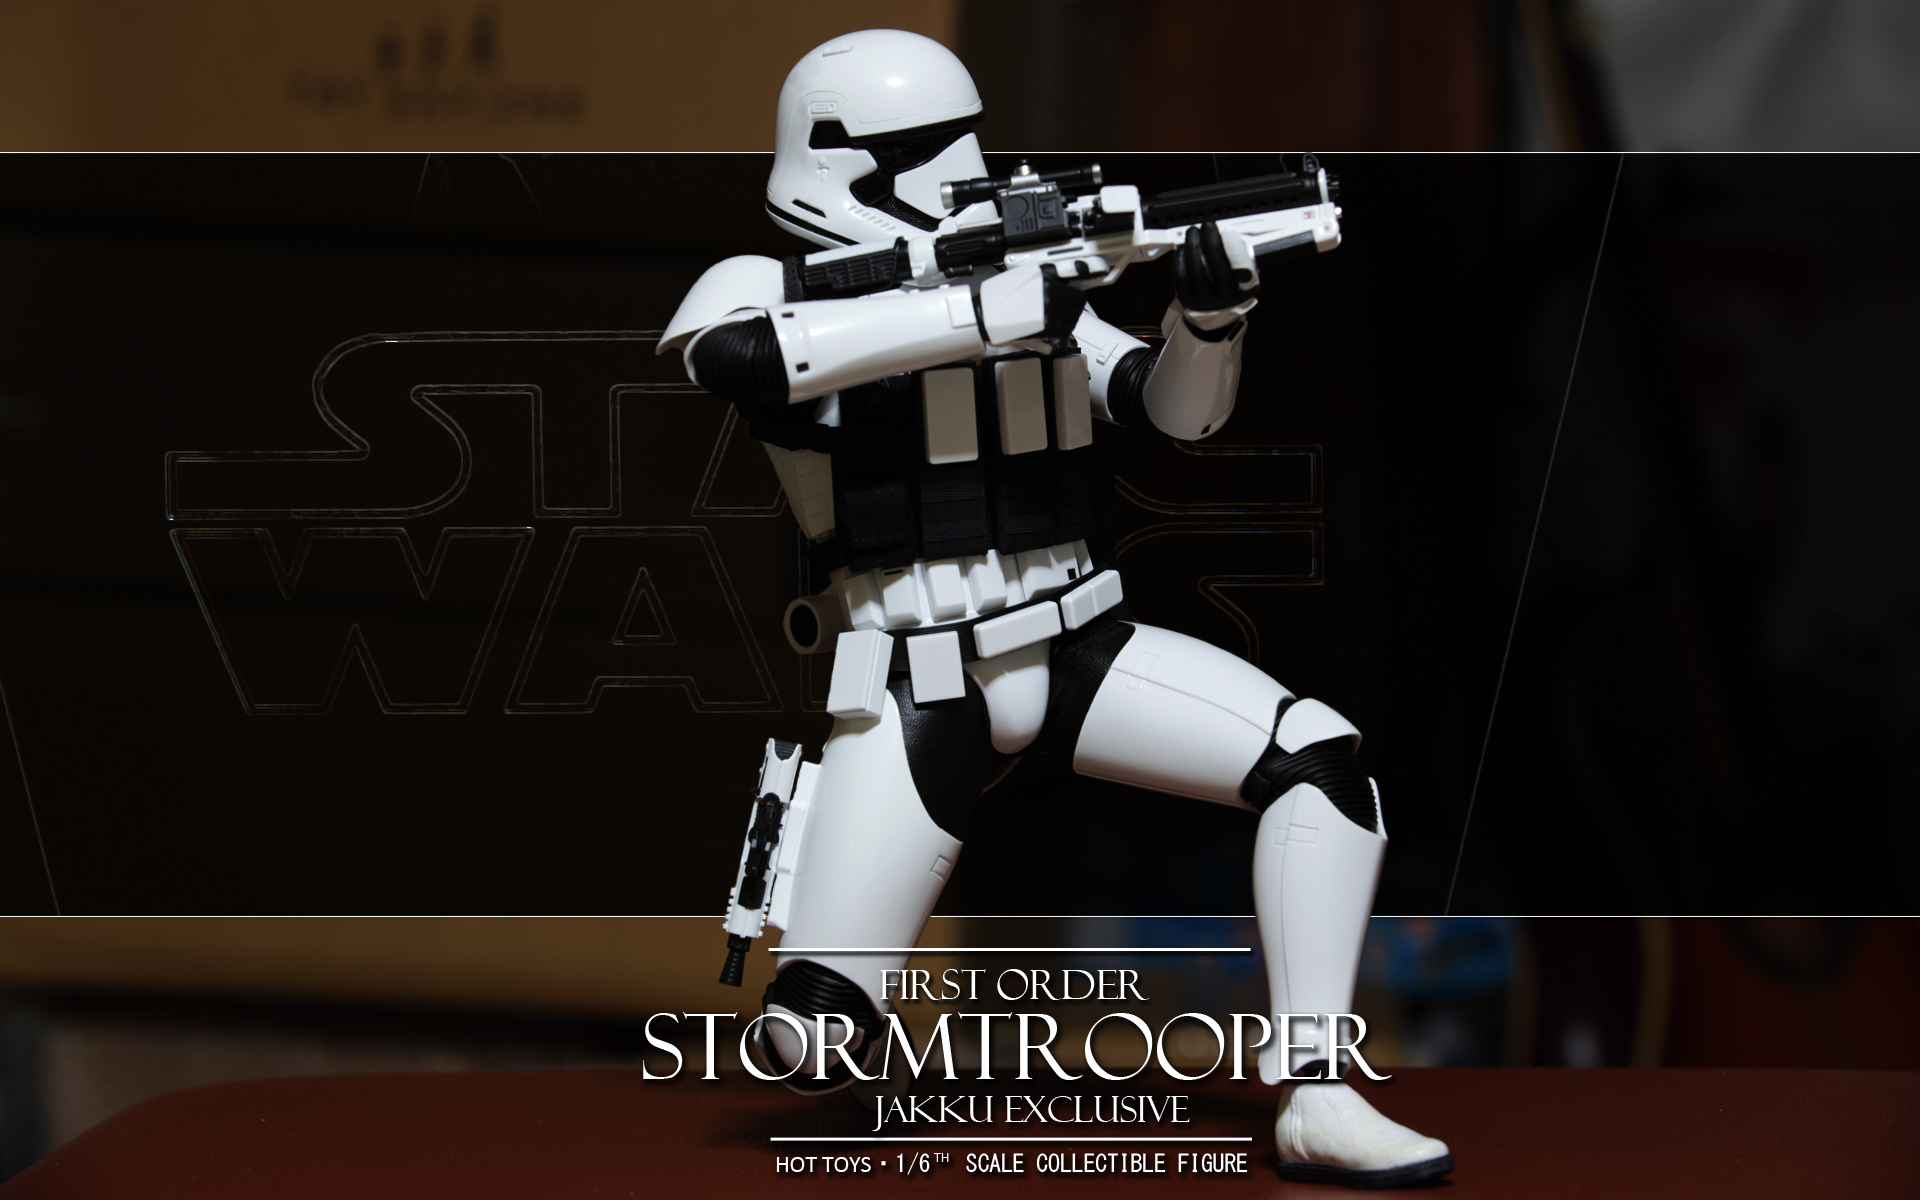 hottoys-star-wars-the-force-awakens-first-order-stormtrooper-jakku-picture02